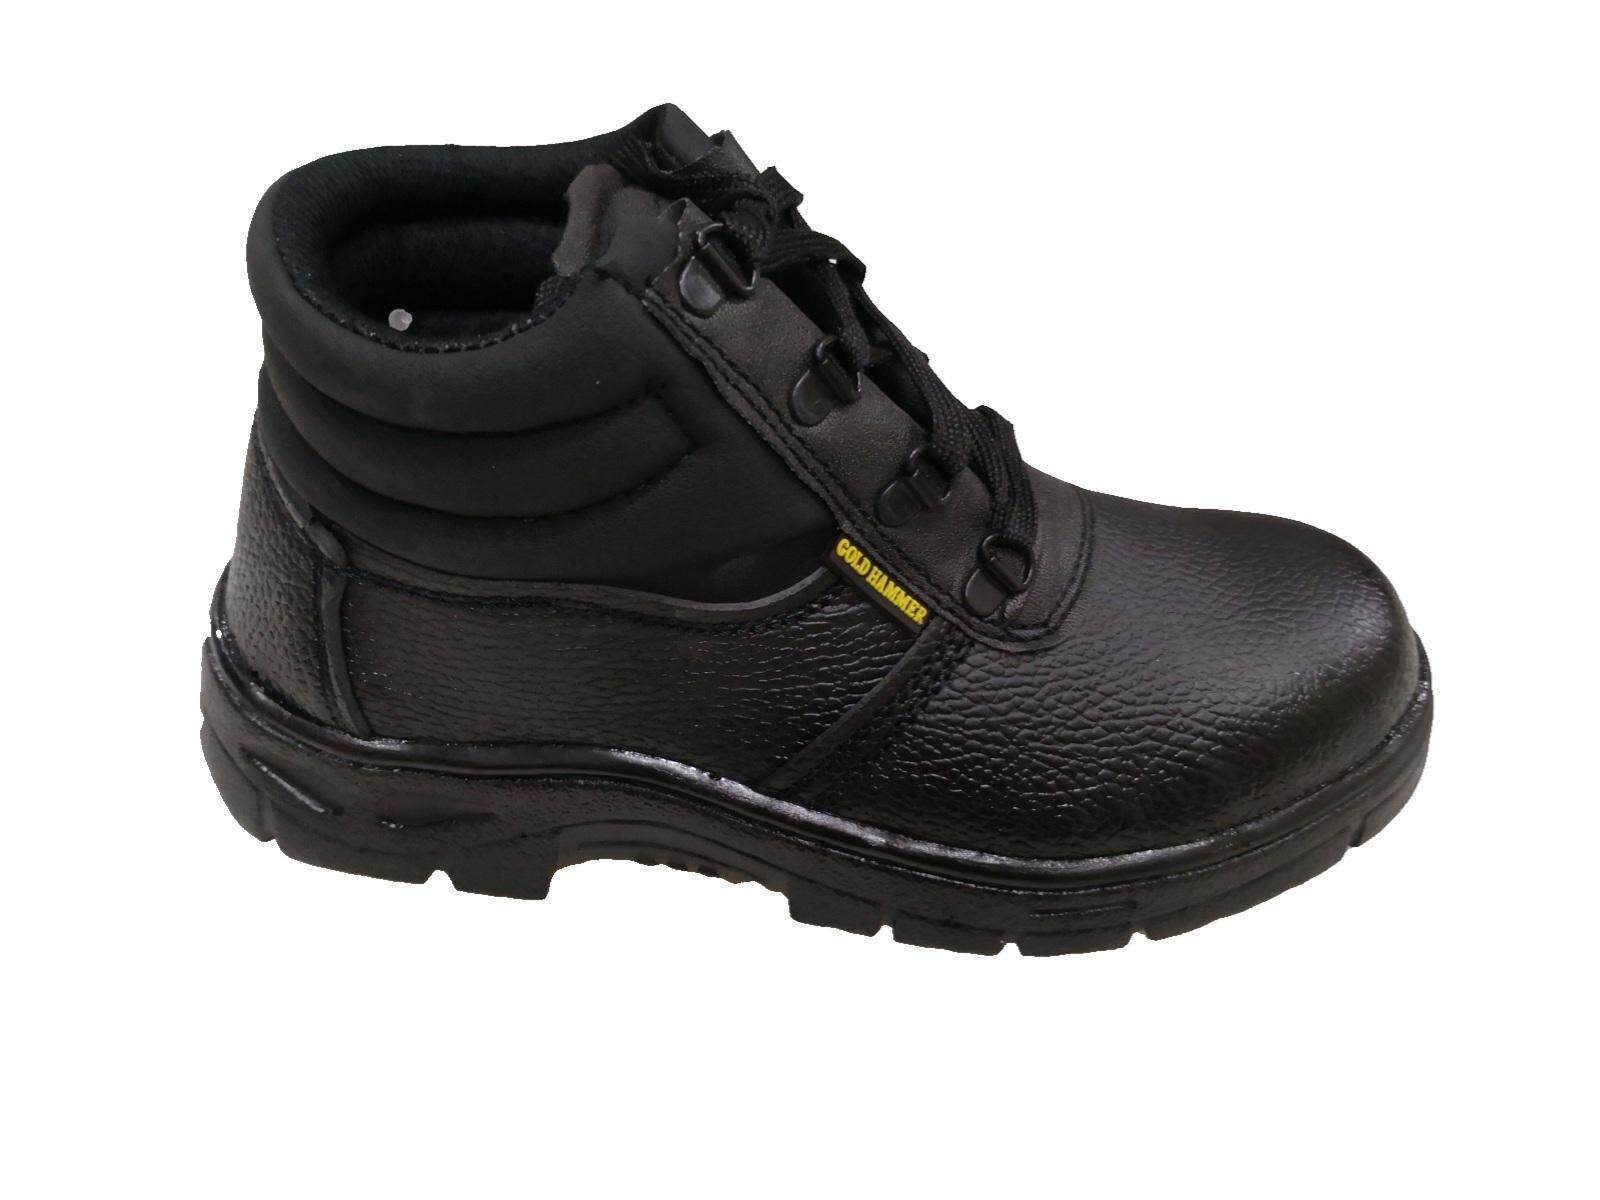 b12b42a5d9 Men's Shoes for the Best Price in Malaysia